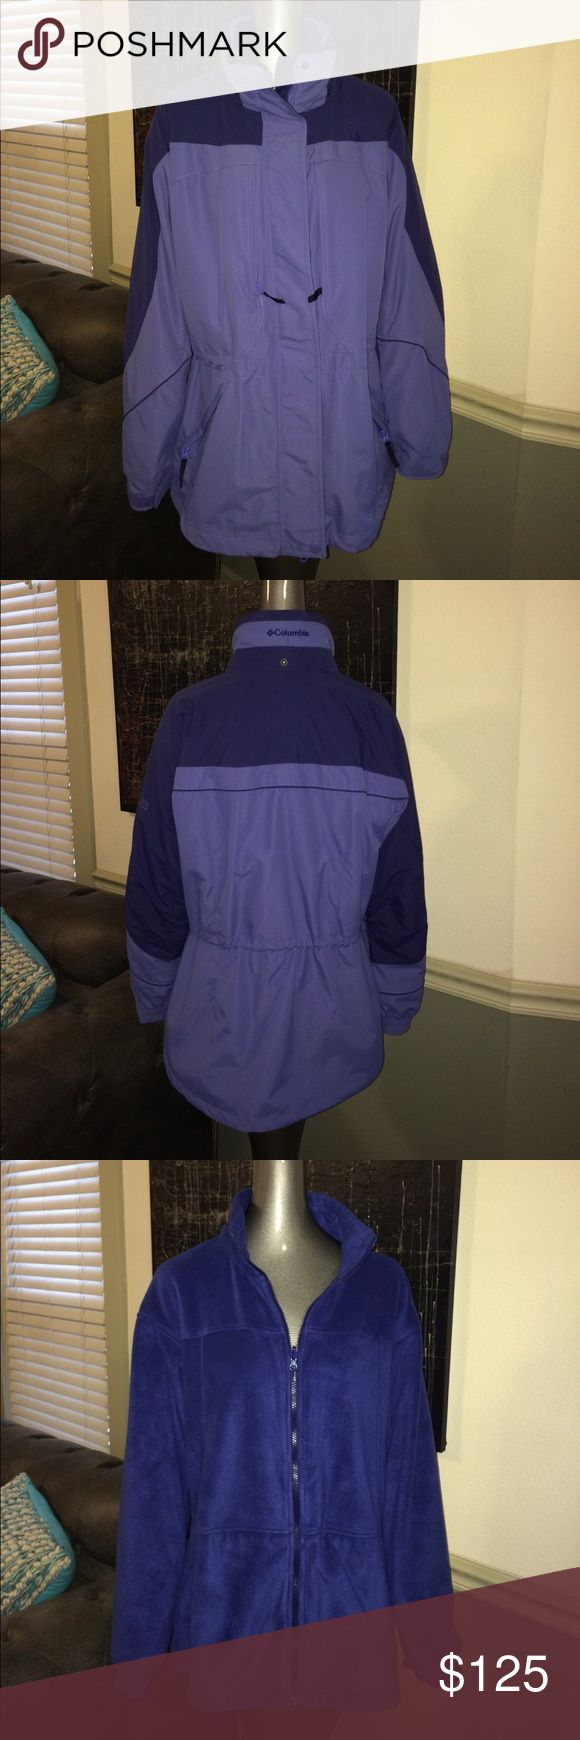 Columbia Sportswear 3-in-1 Bugaboo Jacket EUC--practically NEW--Columbia Sportswear 3-in-1 Bugaboo. Inner layer is a fleece jacket. Cinched at waist with adjustable cords. The outer shell is a weatherproof jacket with lots of pockets & cinched waist with cords. Zip them together and you've got an insulated jacket with fleece lining. It's 3 jackets in 1!! Beautiful lilac & grape color combo. I think I may have worn it 3 times max. More likely once or twice. Columbia Jackets & Coats